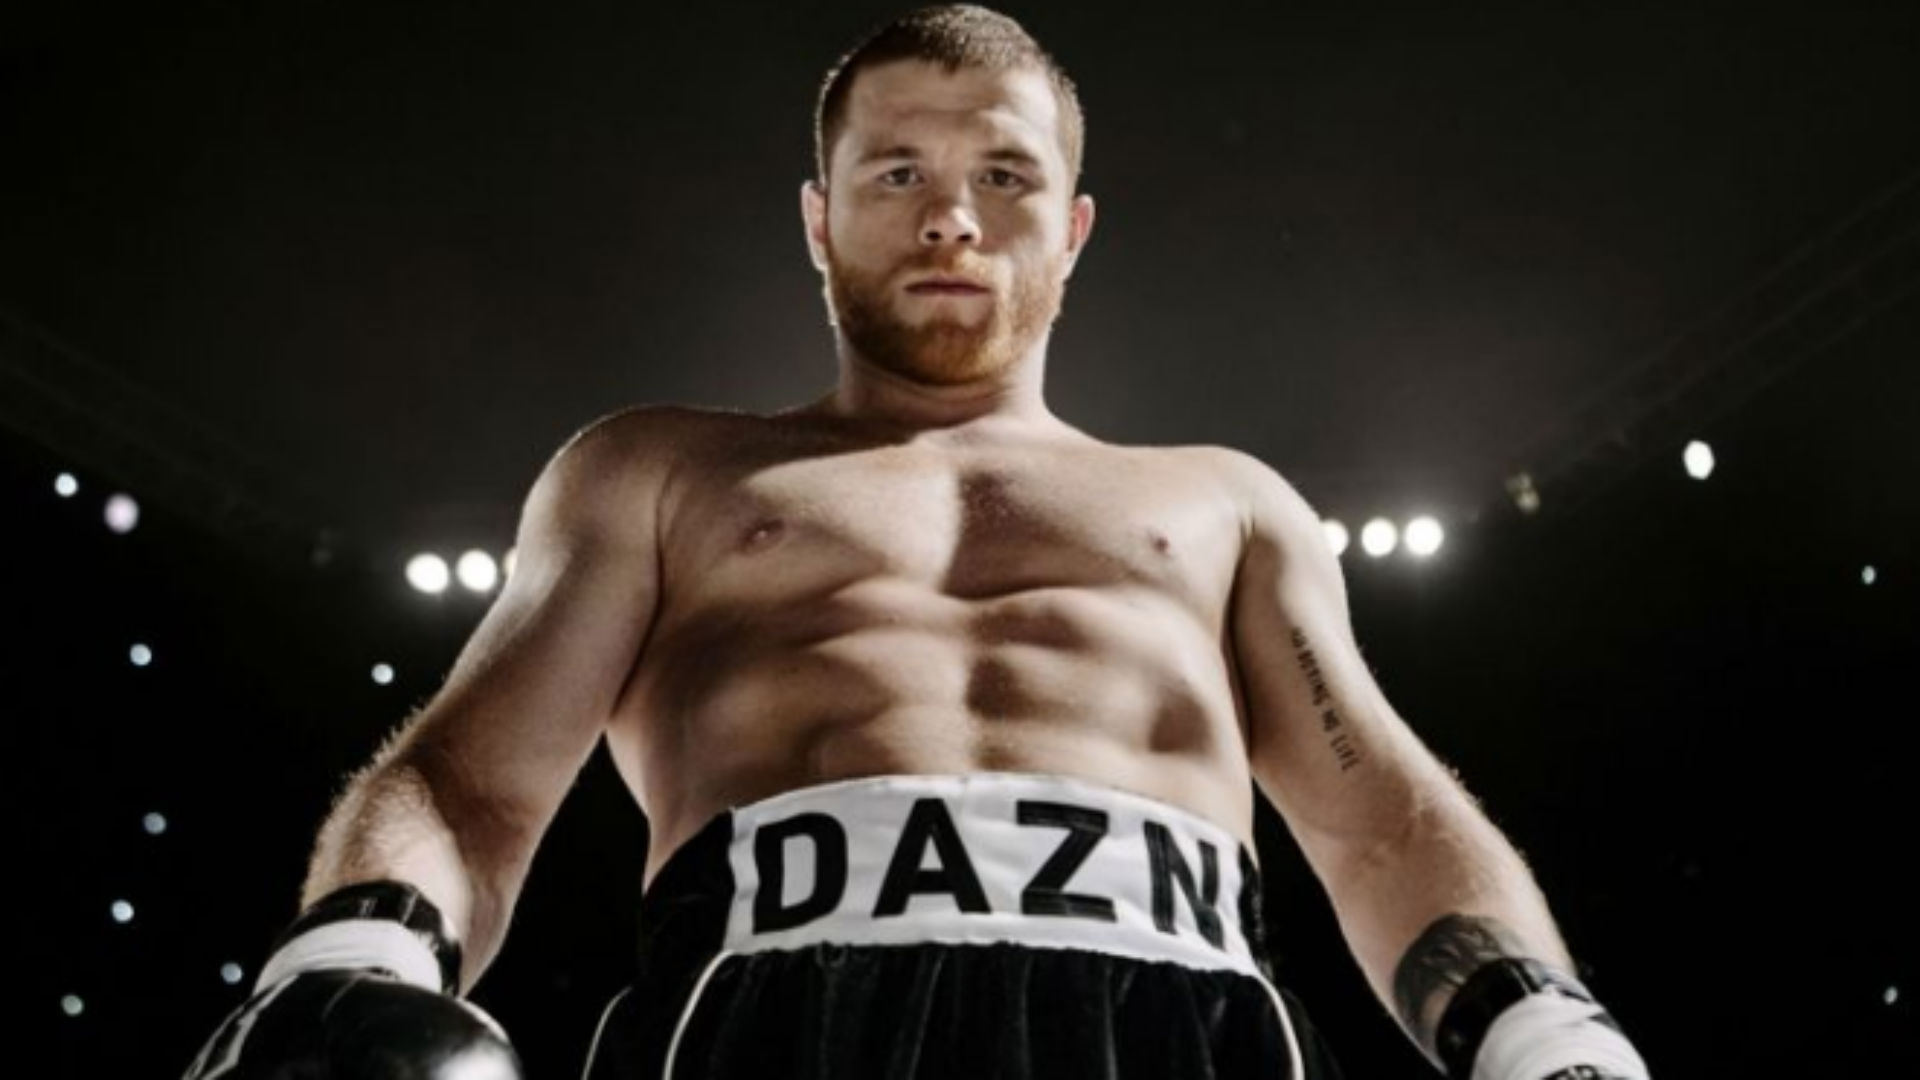 Canelo vs. Smith PPV price: How much does it cost to watch Canelo Alvarez's fight on DAZN?